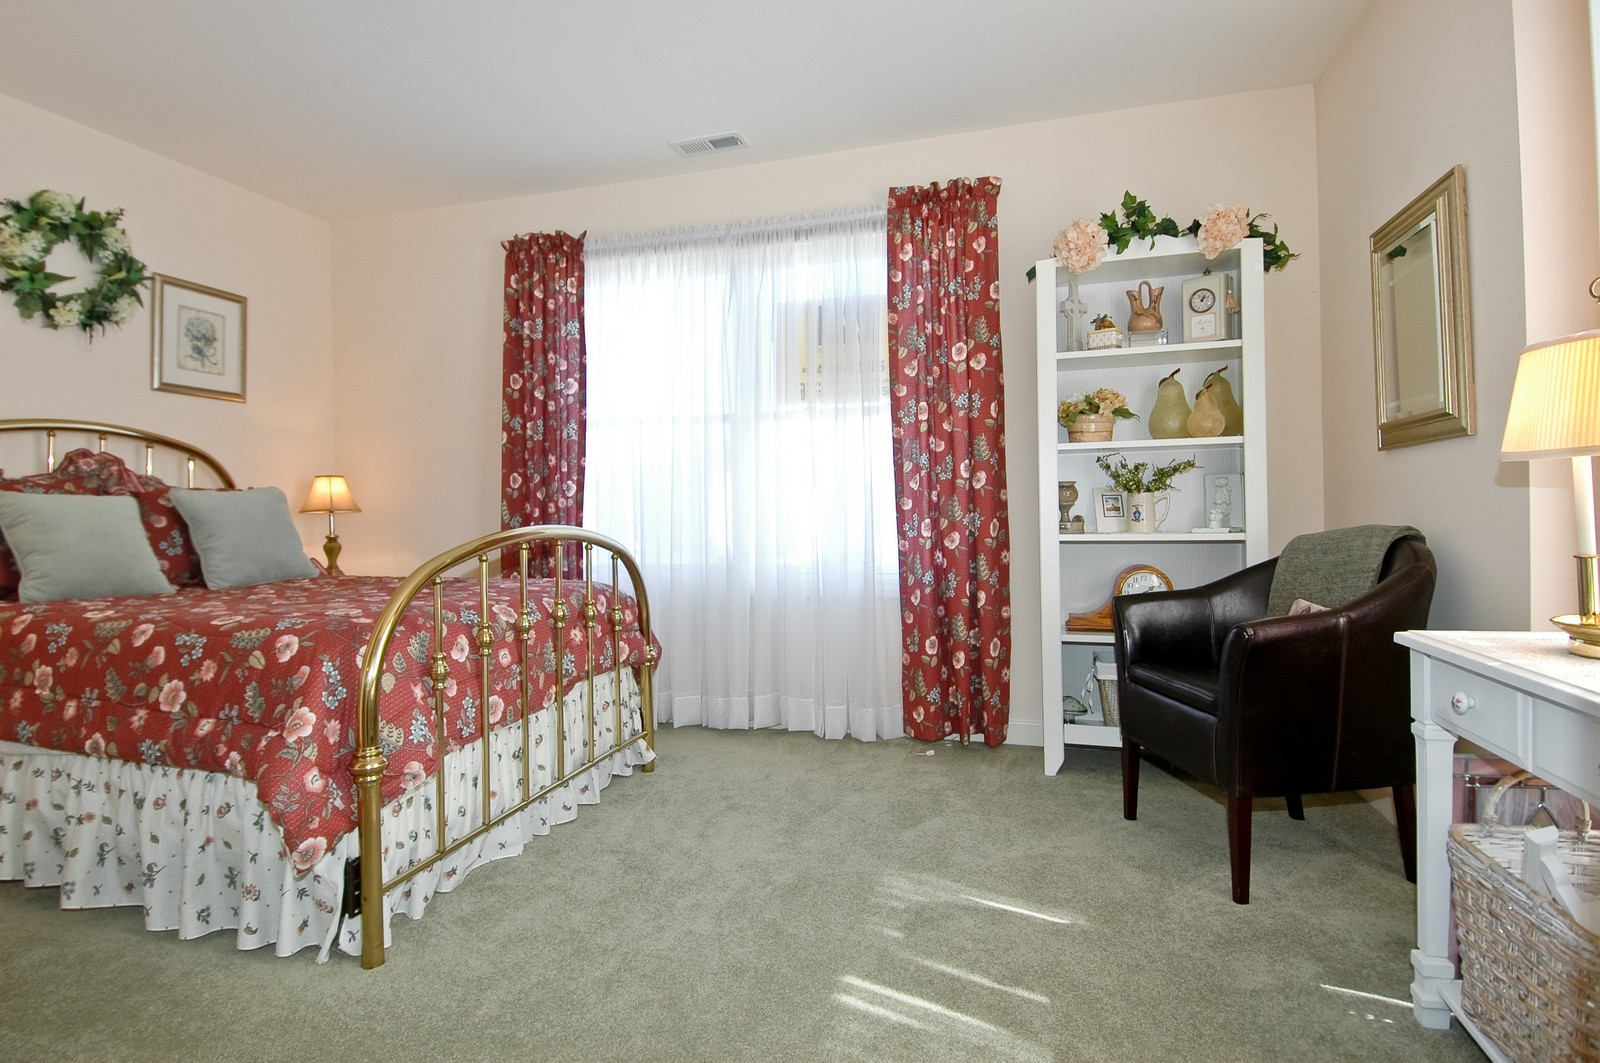 Real Estate Photography - 8337 Raptor, Lakewood, IL, 60014 - Bedroom